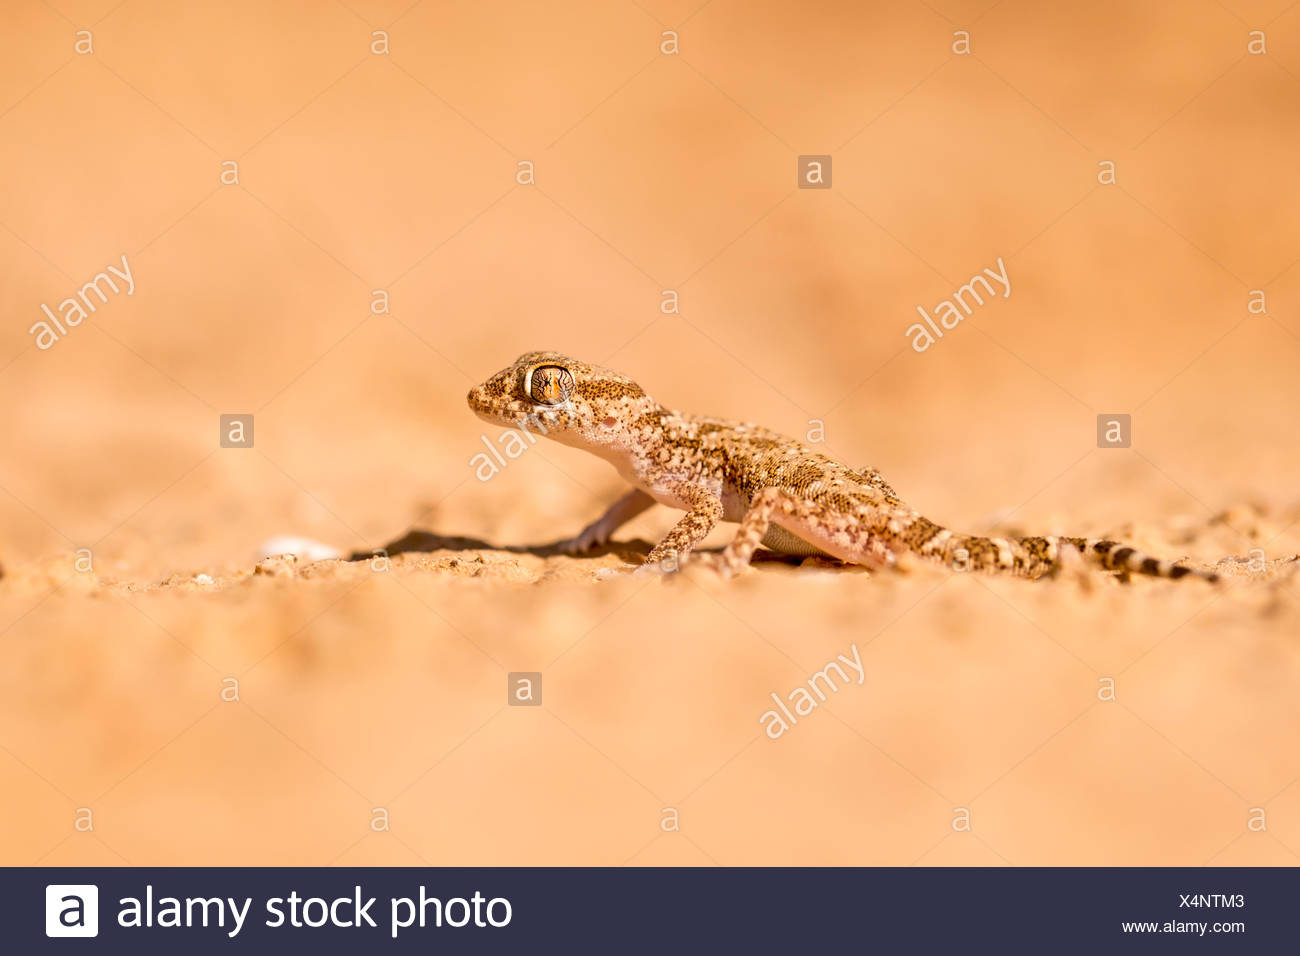 Short-fingered Gecko (Stenodactylus sthenodactylus) sometimes called dune gecko or dwarf gecko. This specie is common in collect Stock Photo